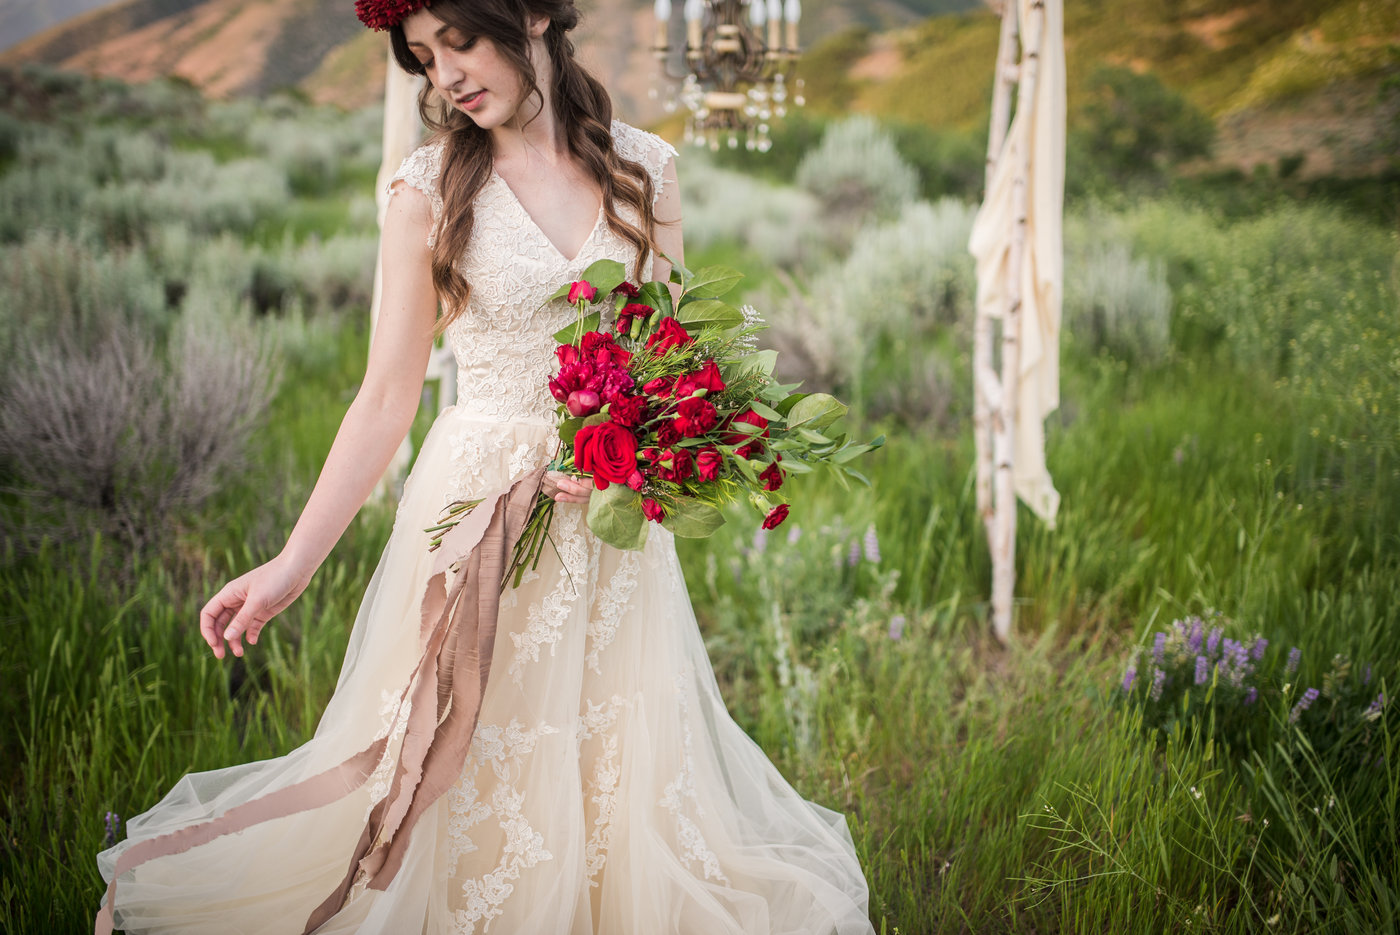 Intertwined Floral-Utah Photographer-Utah Wedding Photographer-Draper, Utah-Utah Bridals (2).jpg